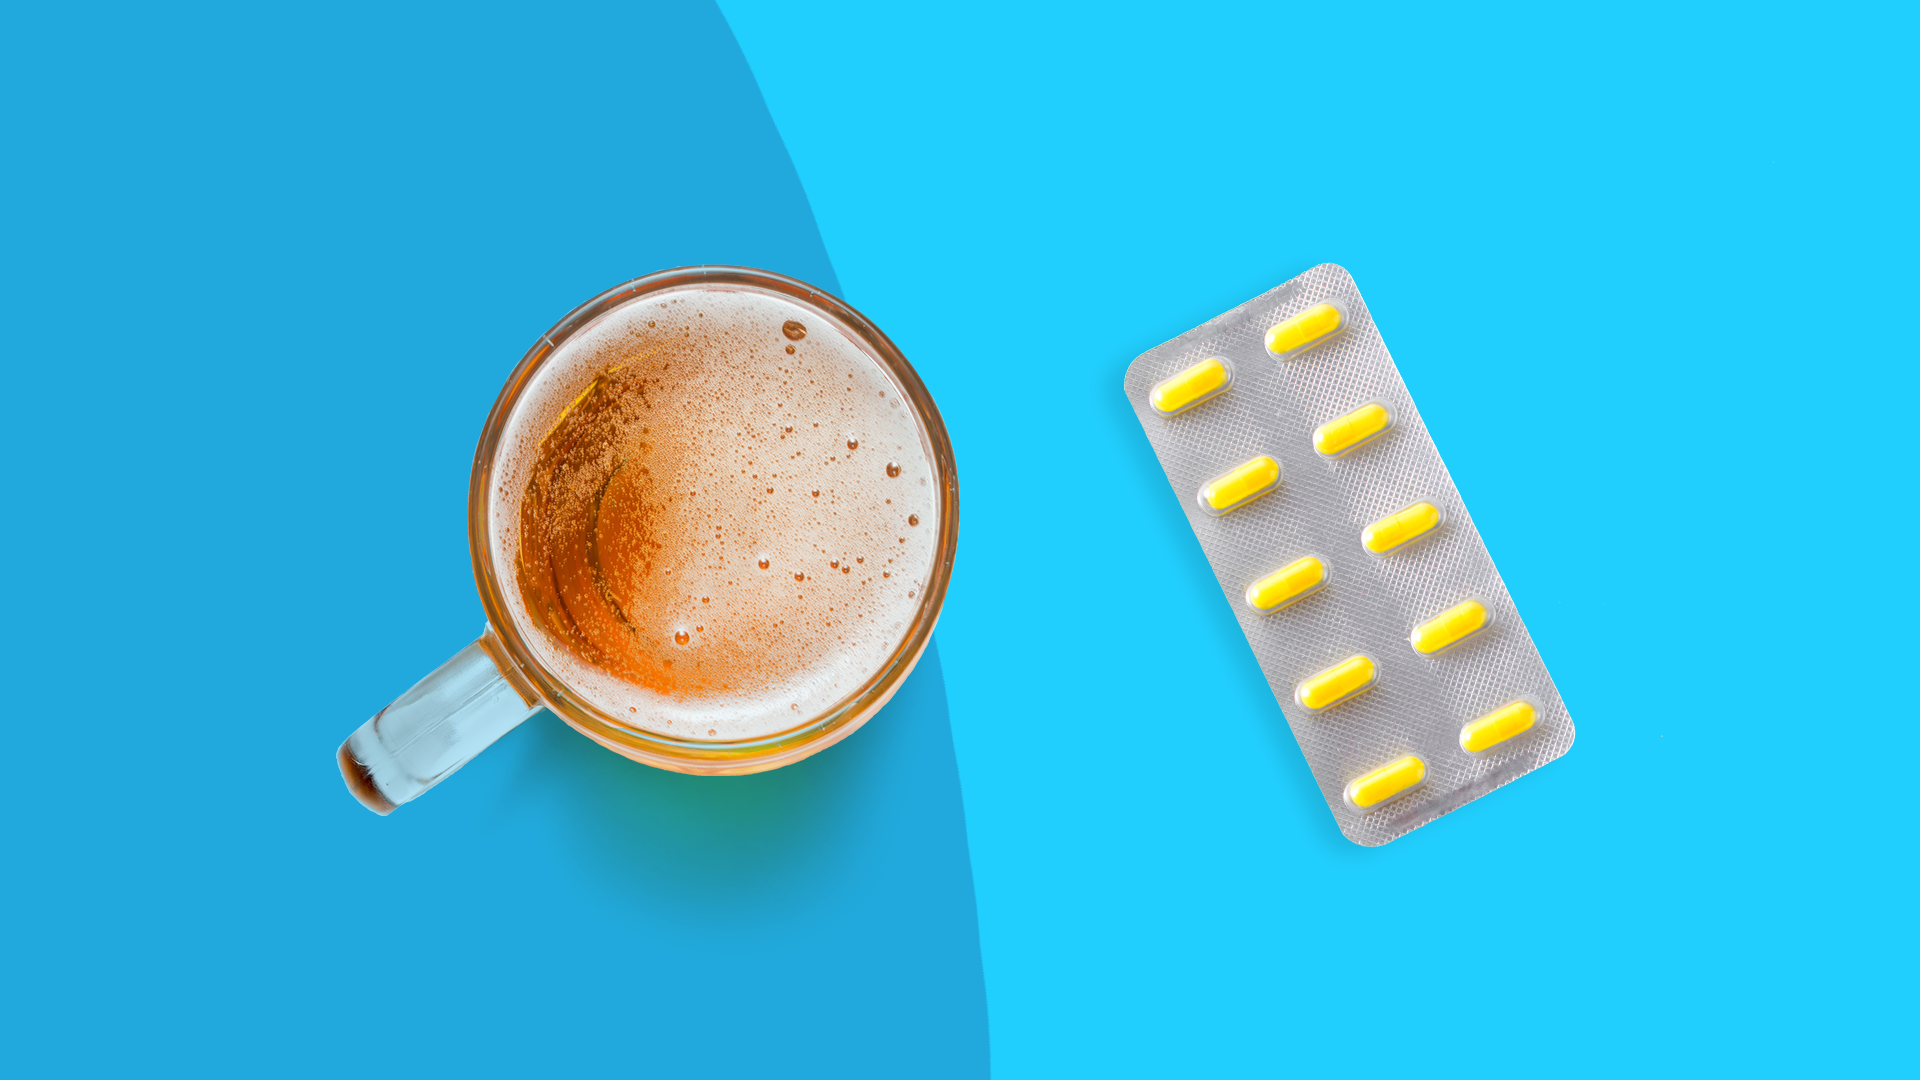 Is it safe to drink alcohol with cold and flu medication?